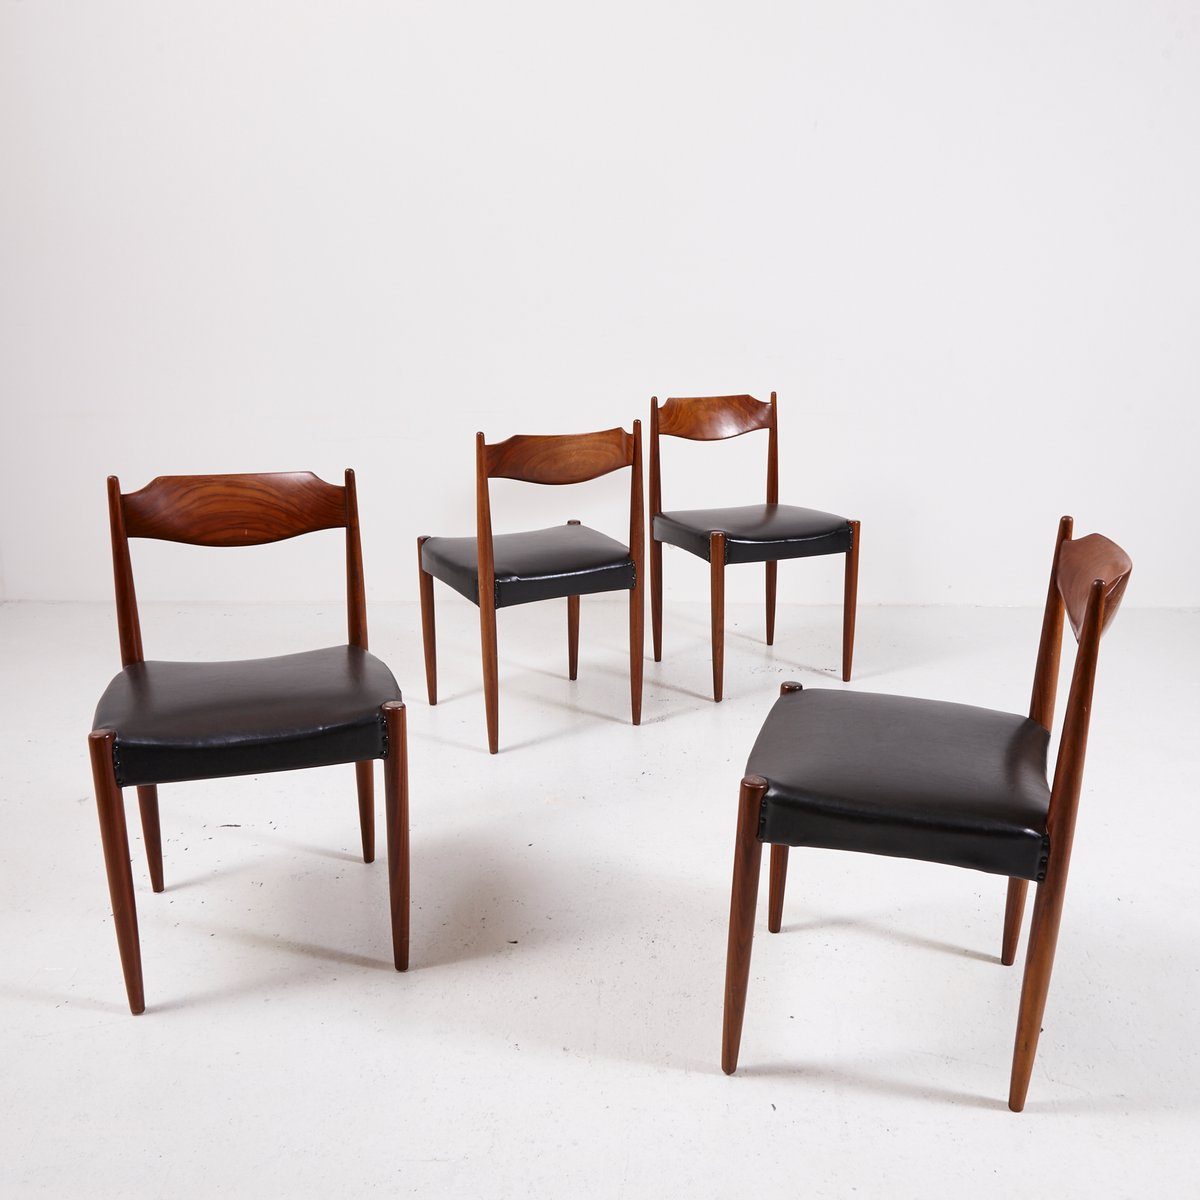 dining chairs set of 4. Danish Rosewood Dining Chairs, Set Of 4 Chairs I